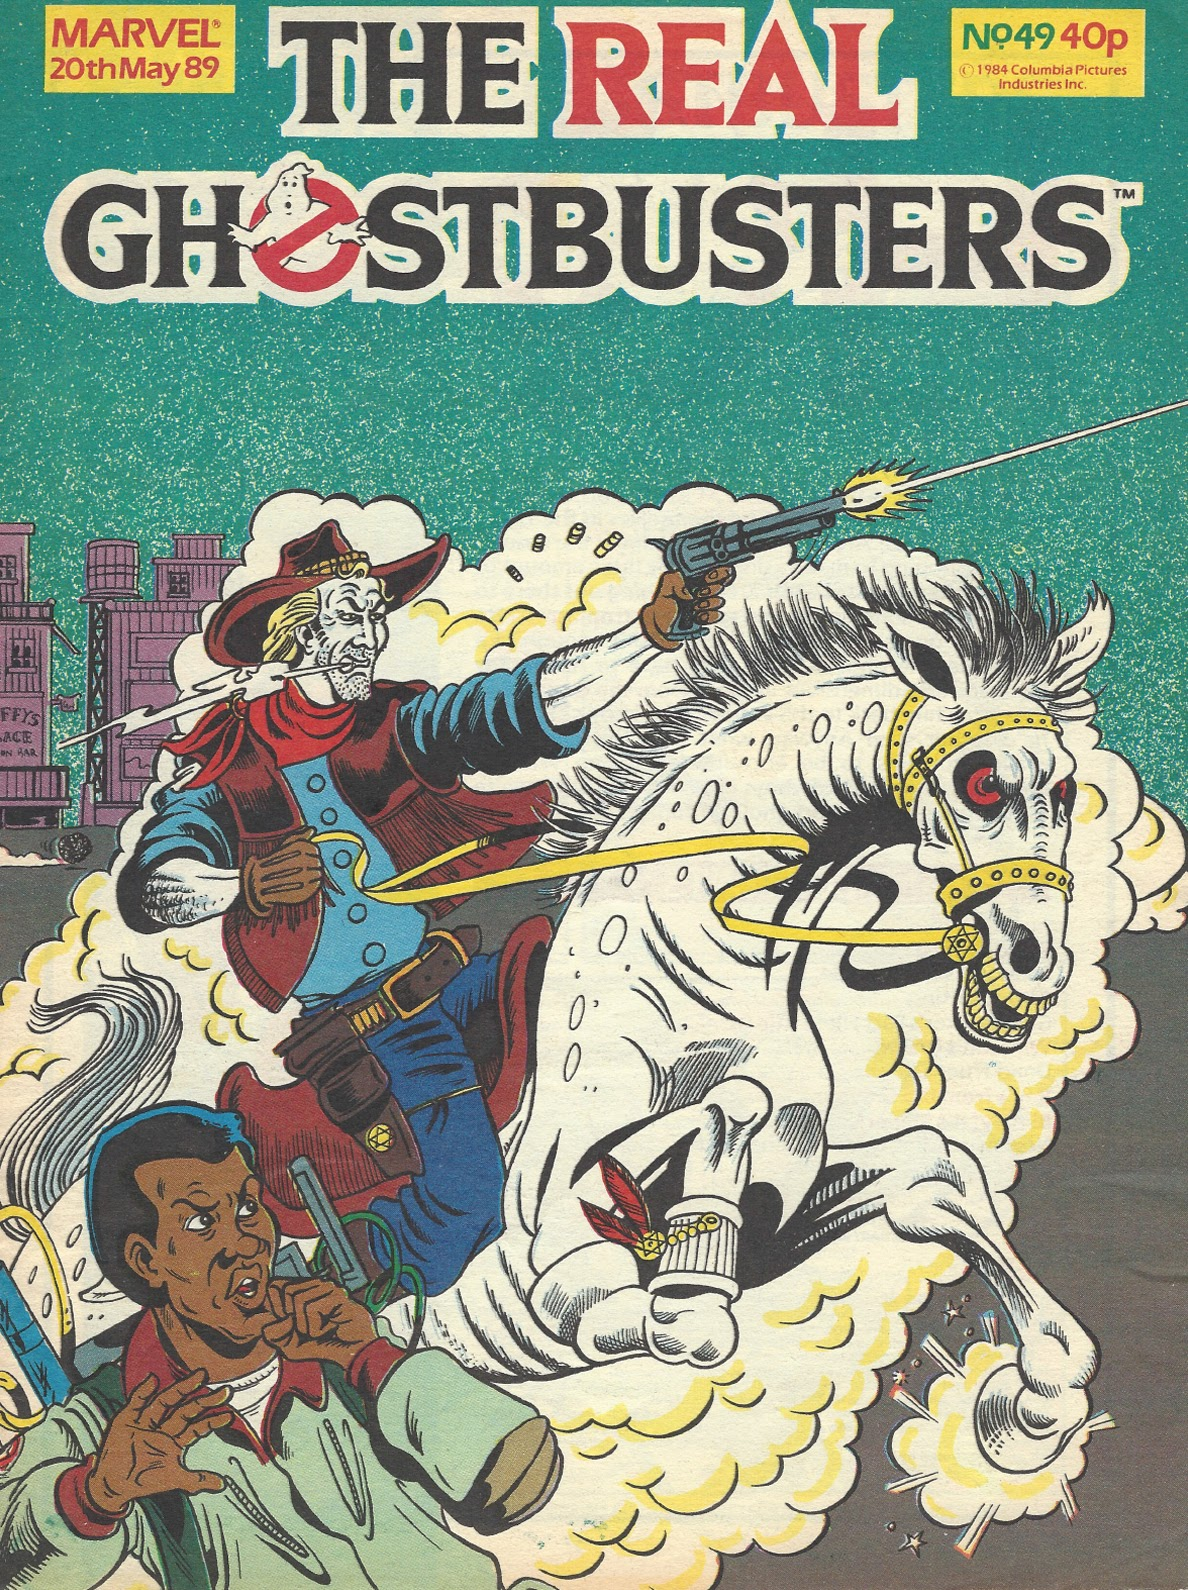 The Real Ghostbusters 49 Page 1